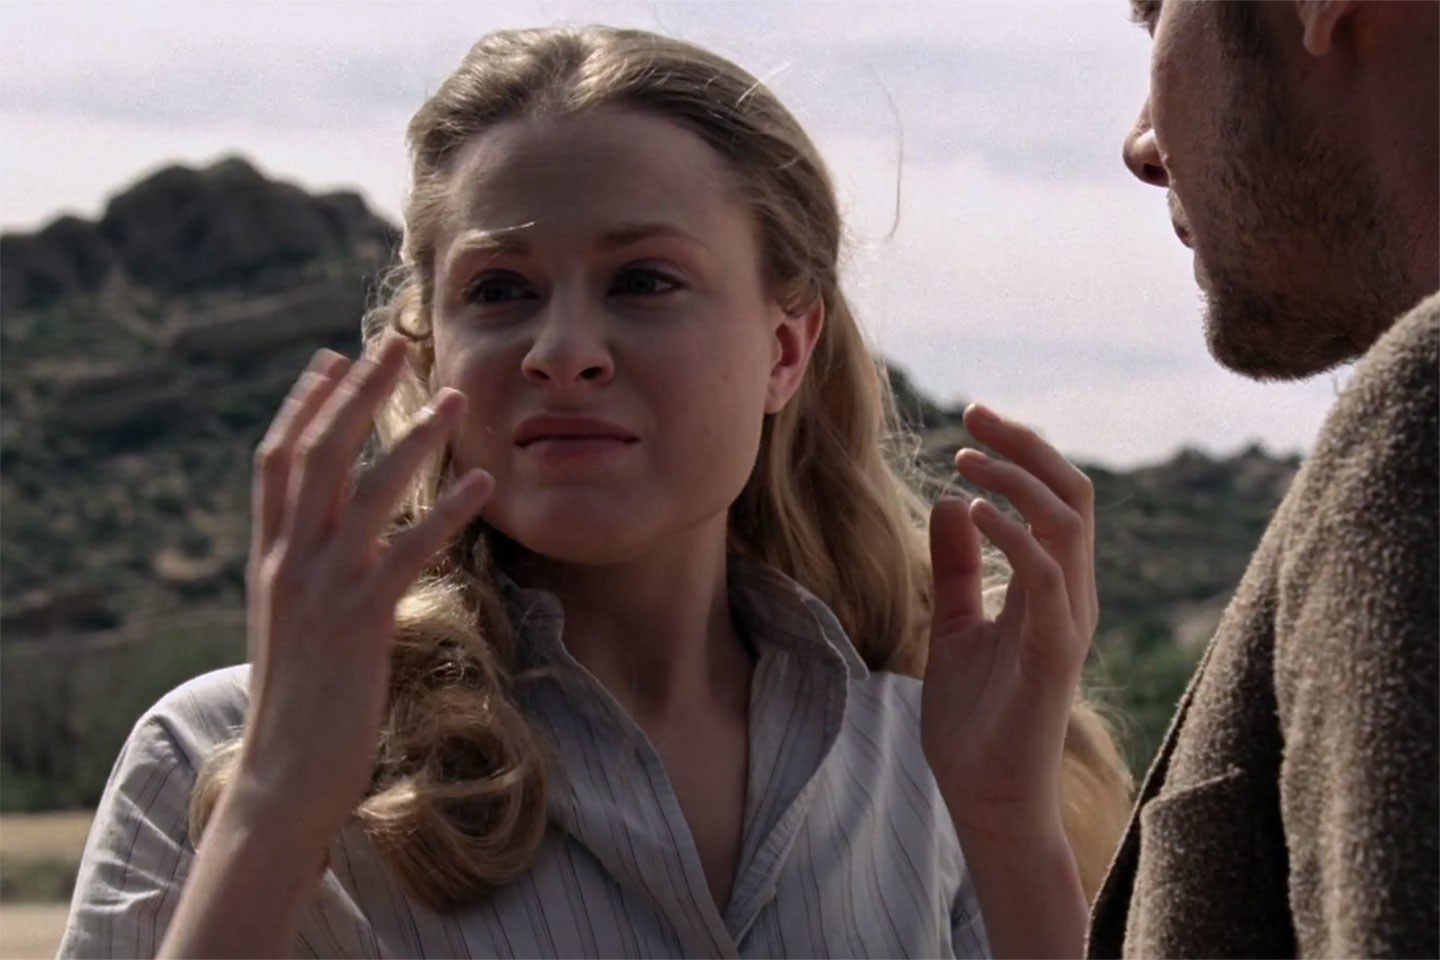 Evan Rachel Wood as an upset Dolores Abernathy in HBO's Westworld